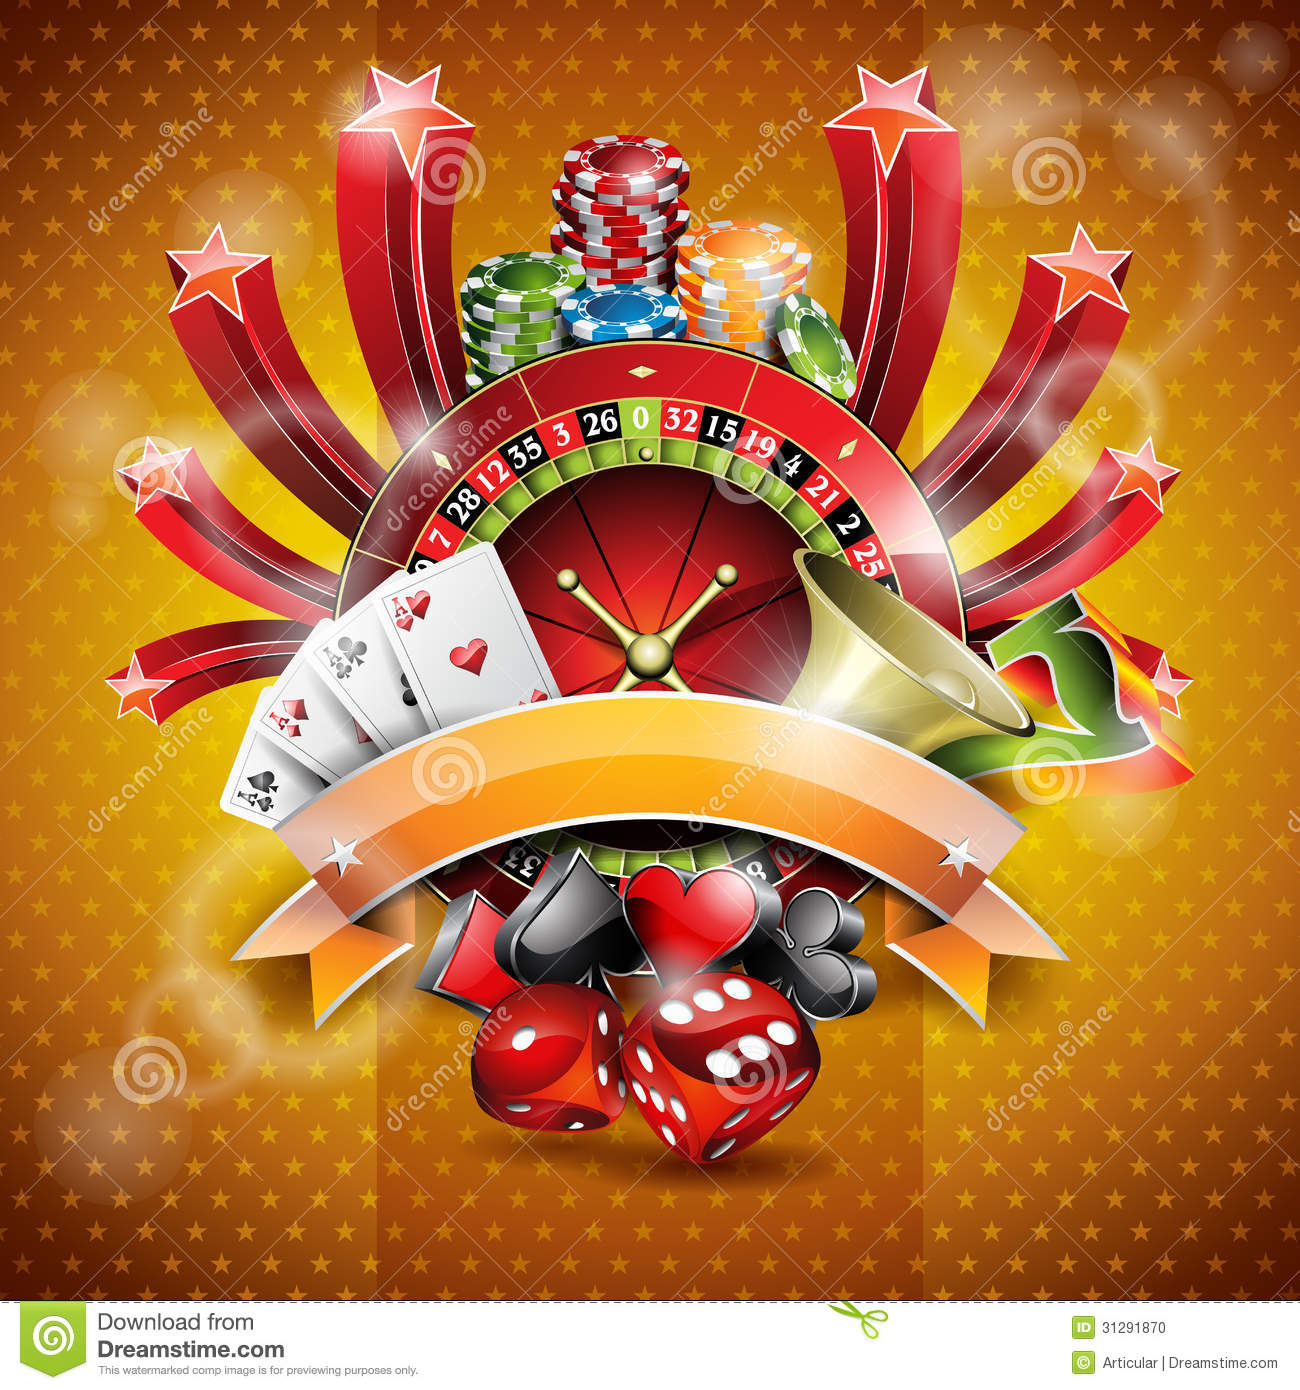 Casinocom  Online Casino  400 Welcome Bonus